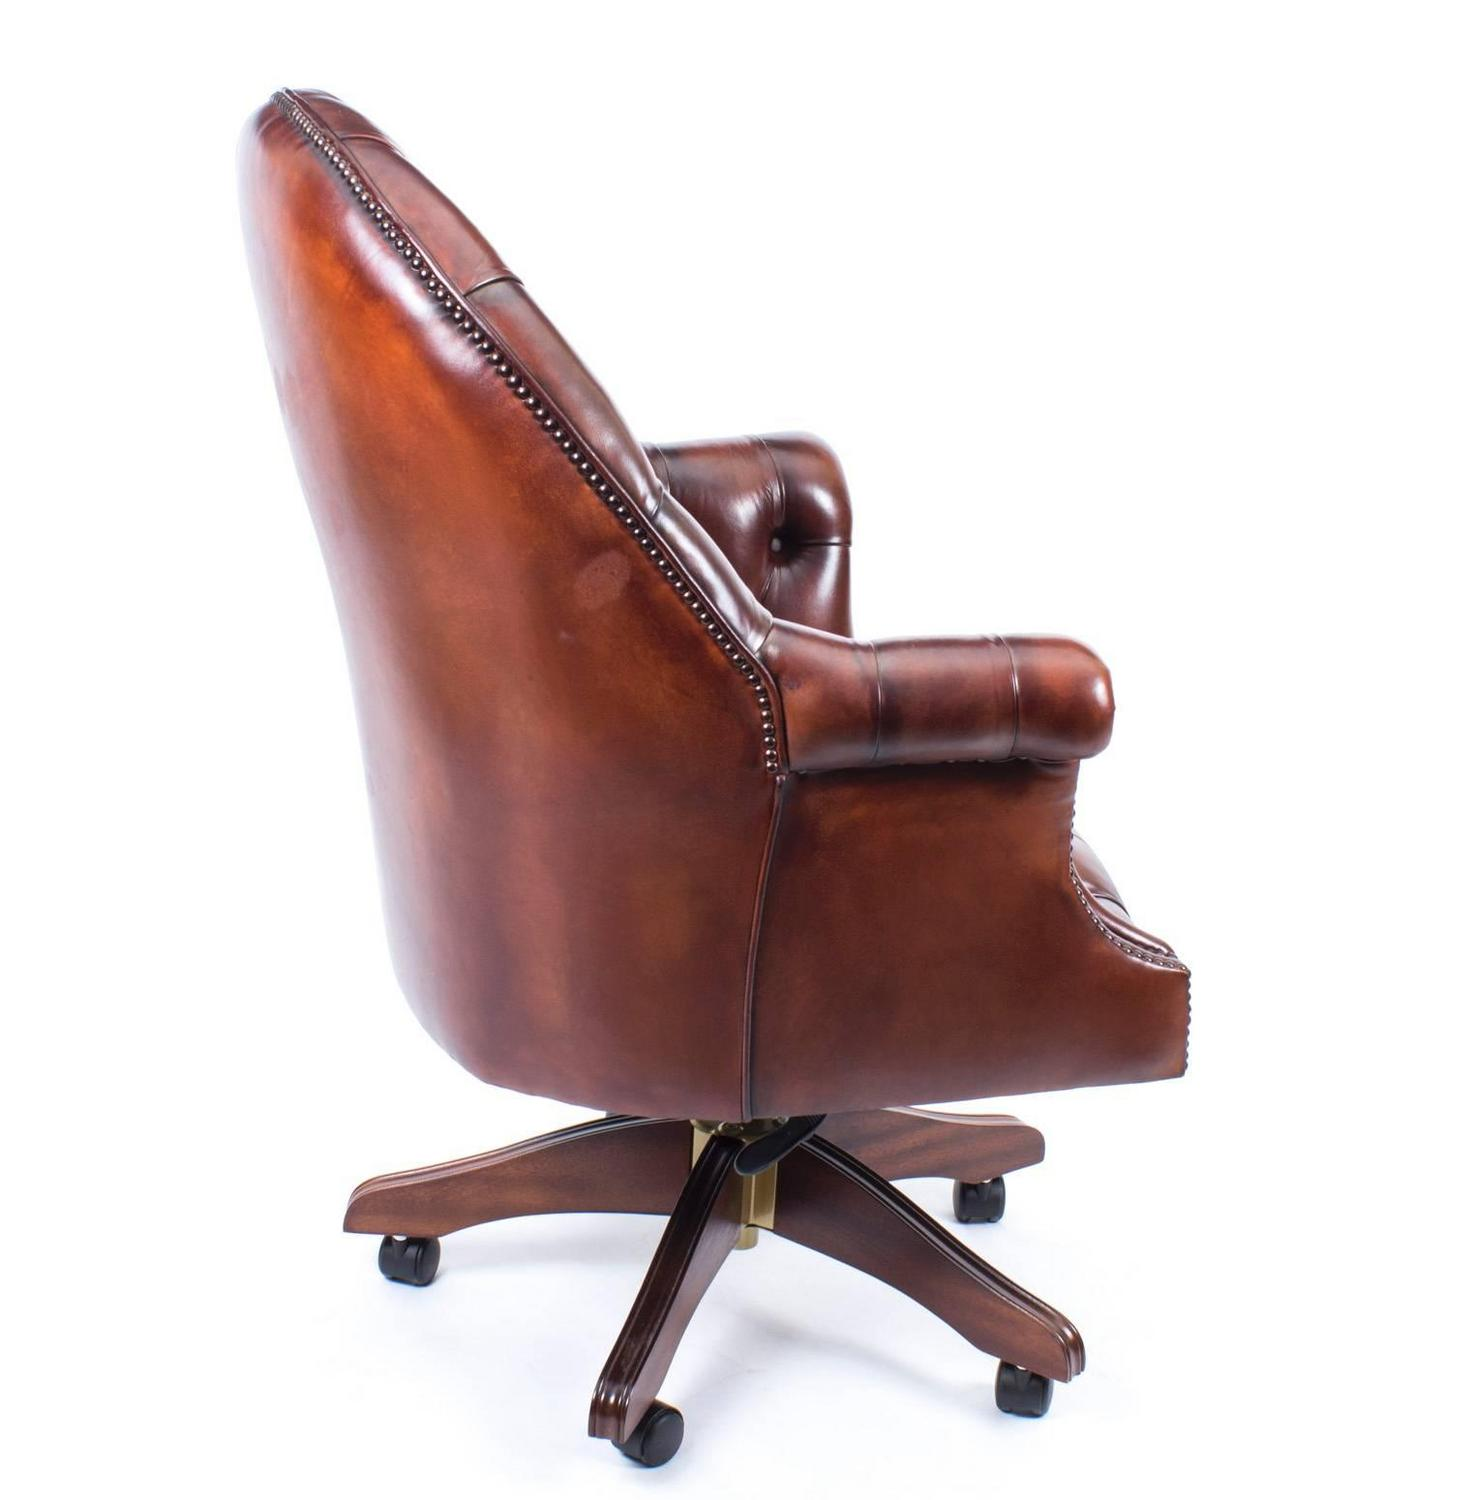 unique leather office chairs sure fit chair covers nz english handmade directors desk bbo at 1stdibs